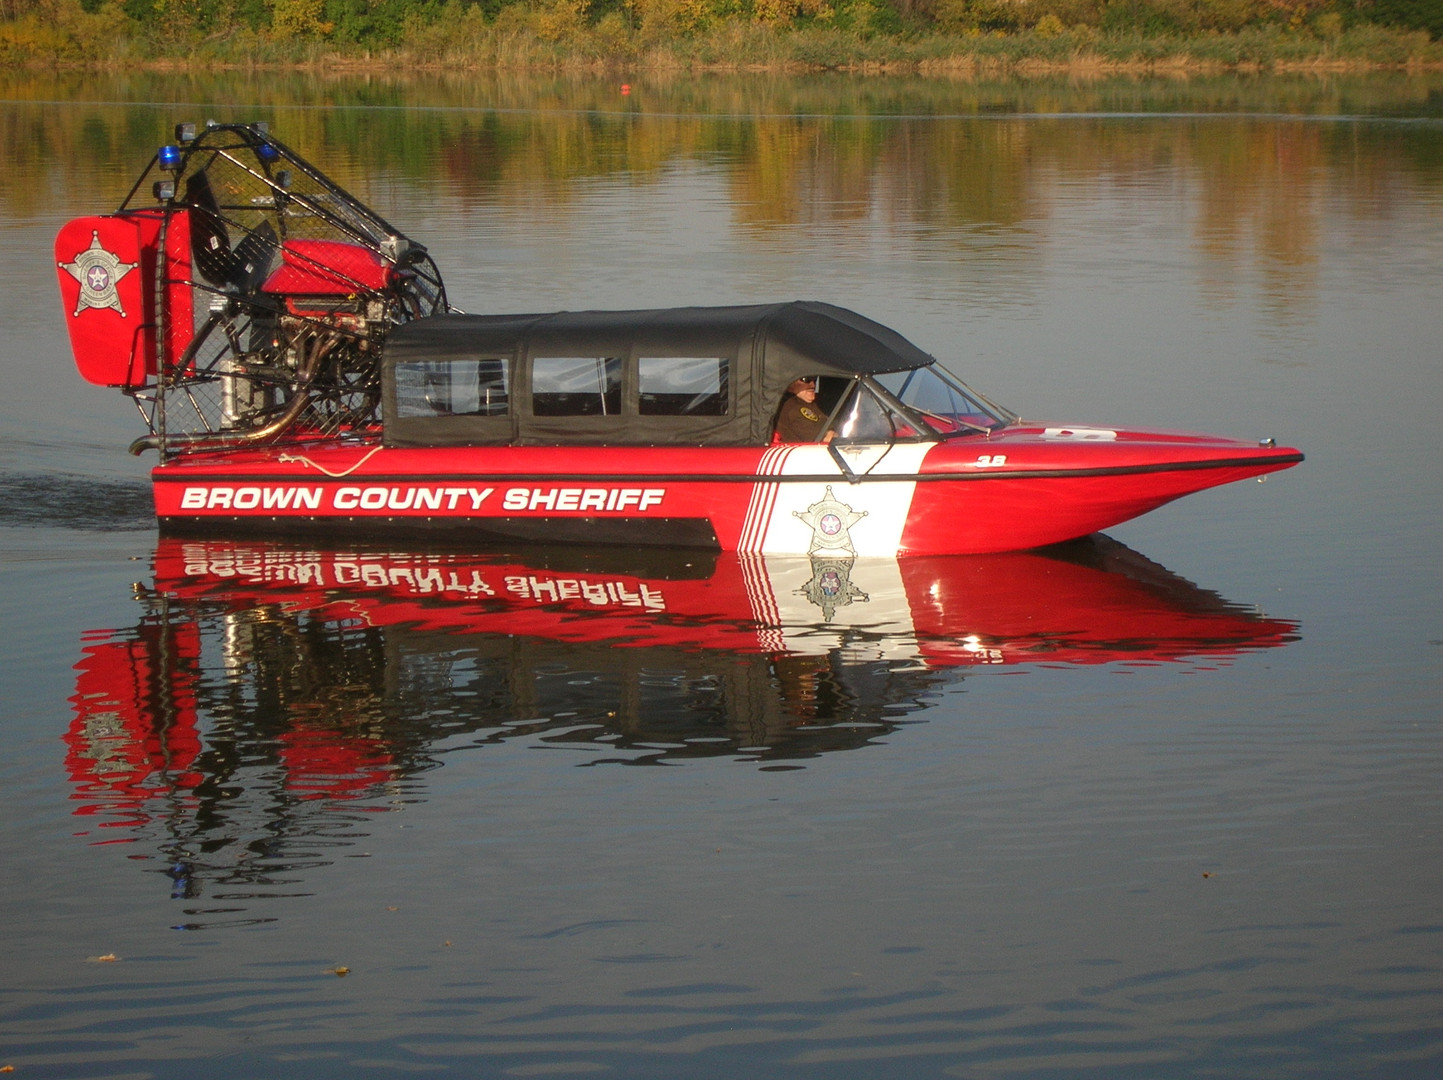 Brown County Sheriff Airboat